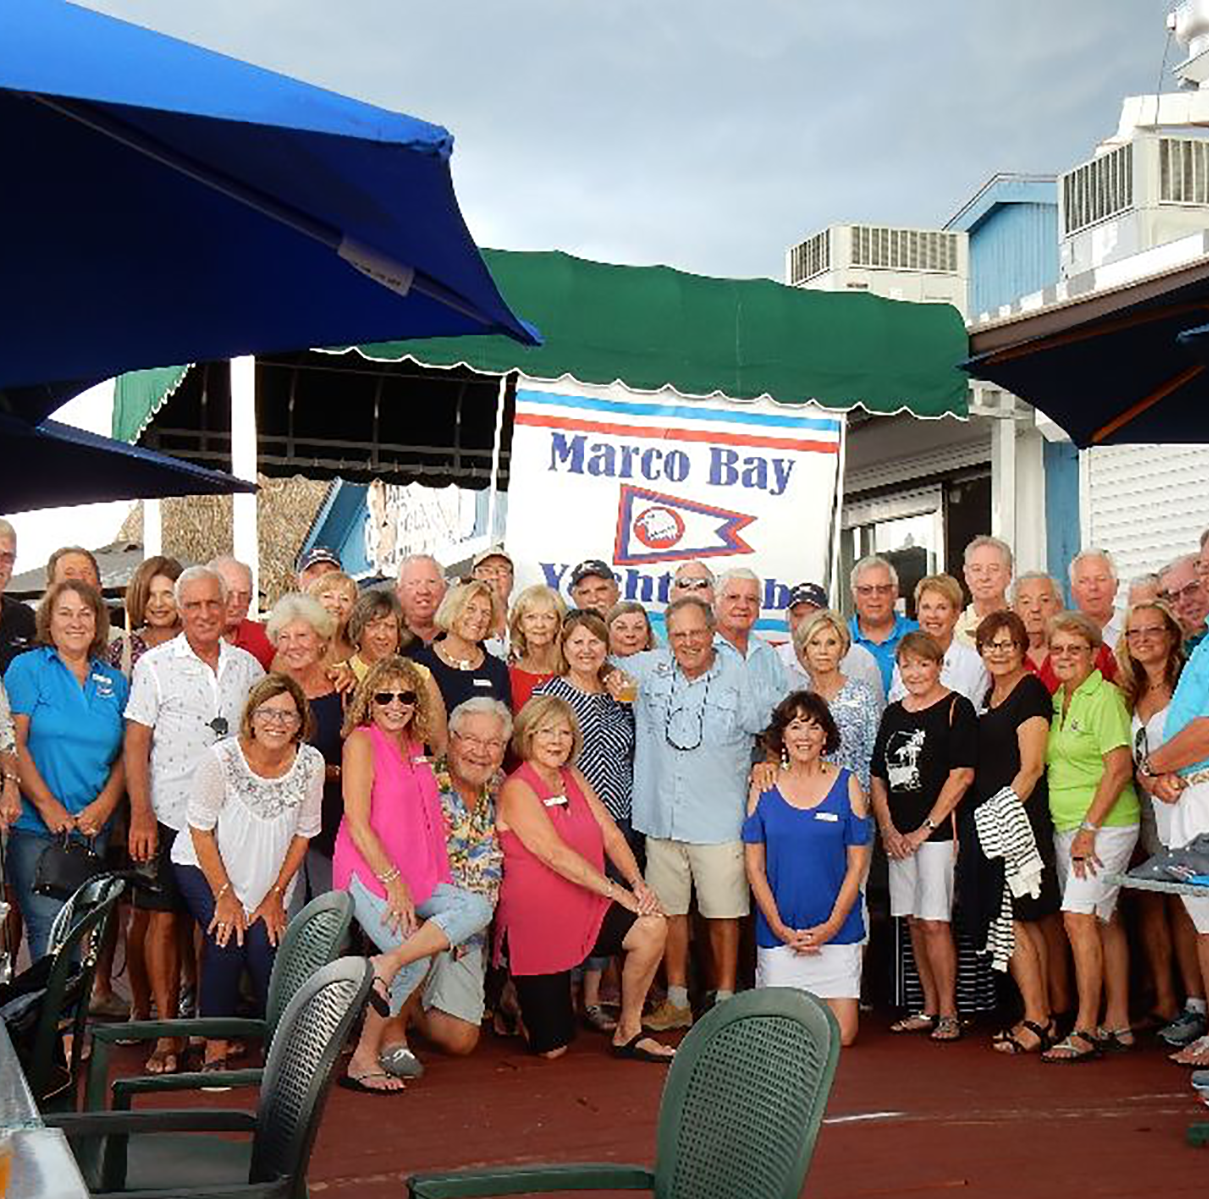 Club Briefs: Monday Madness for Marco Bay Yacht Club